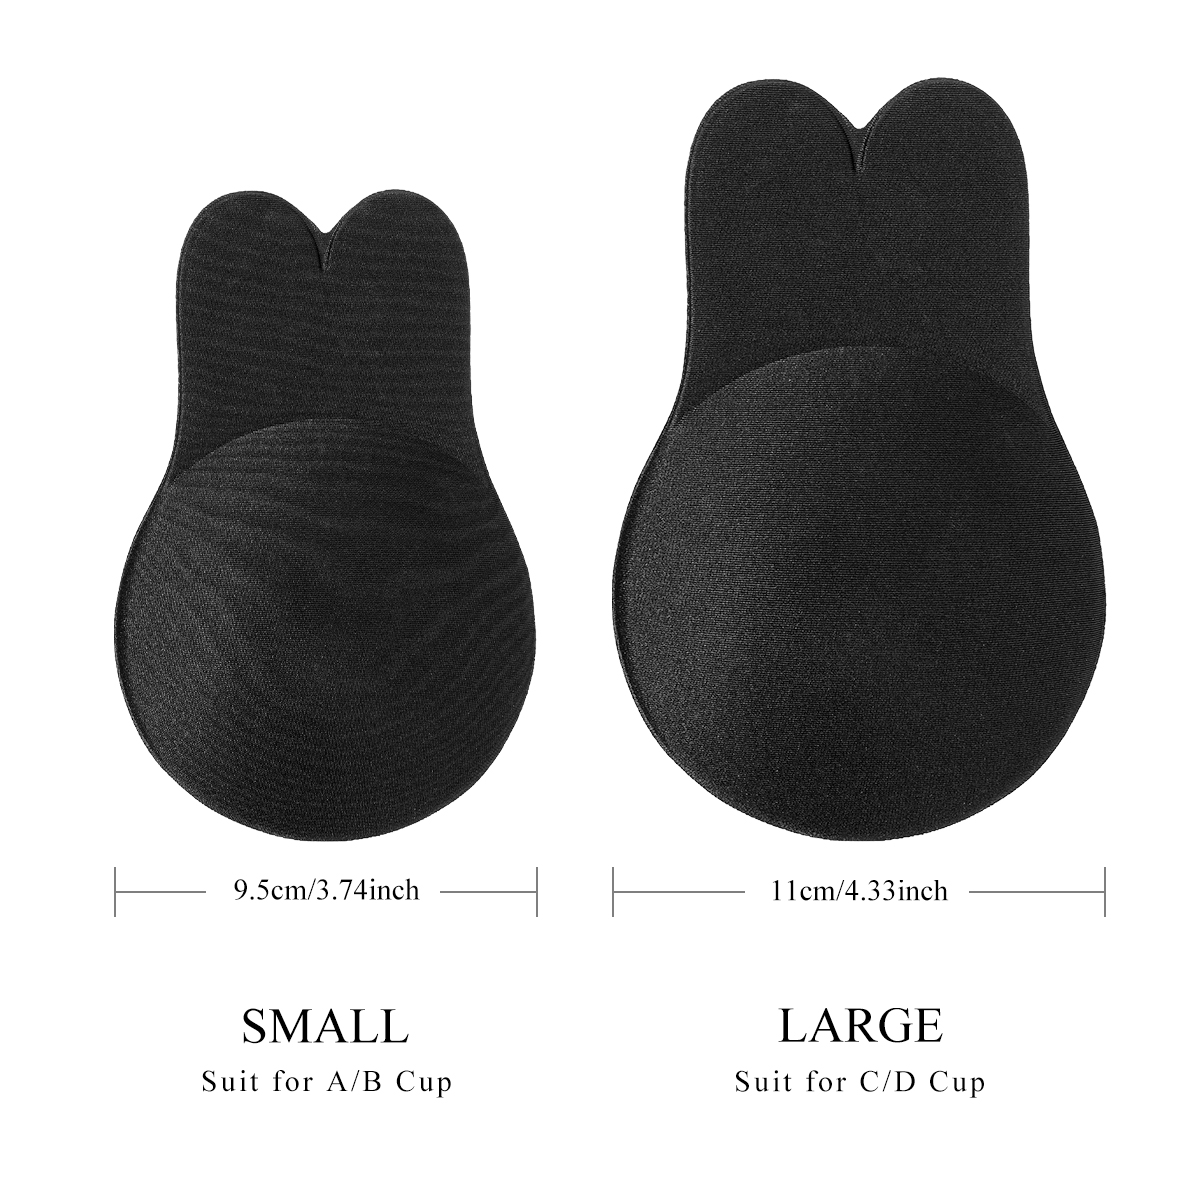 Strapless Bra Adhesive Nipple Breast Pasties Cover Reusable Silicone Lingerie Pad Enhancers Push Up Bra Backless Bra in Sports Bras from Sports Entertainment